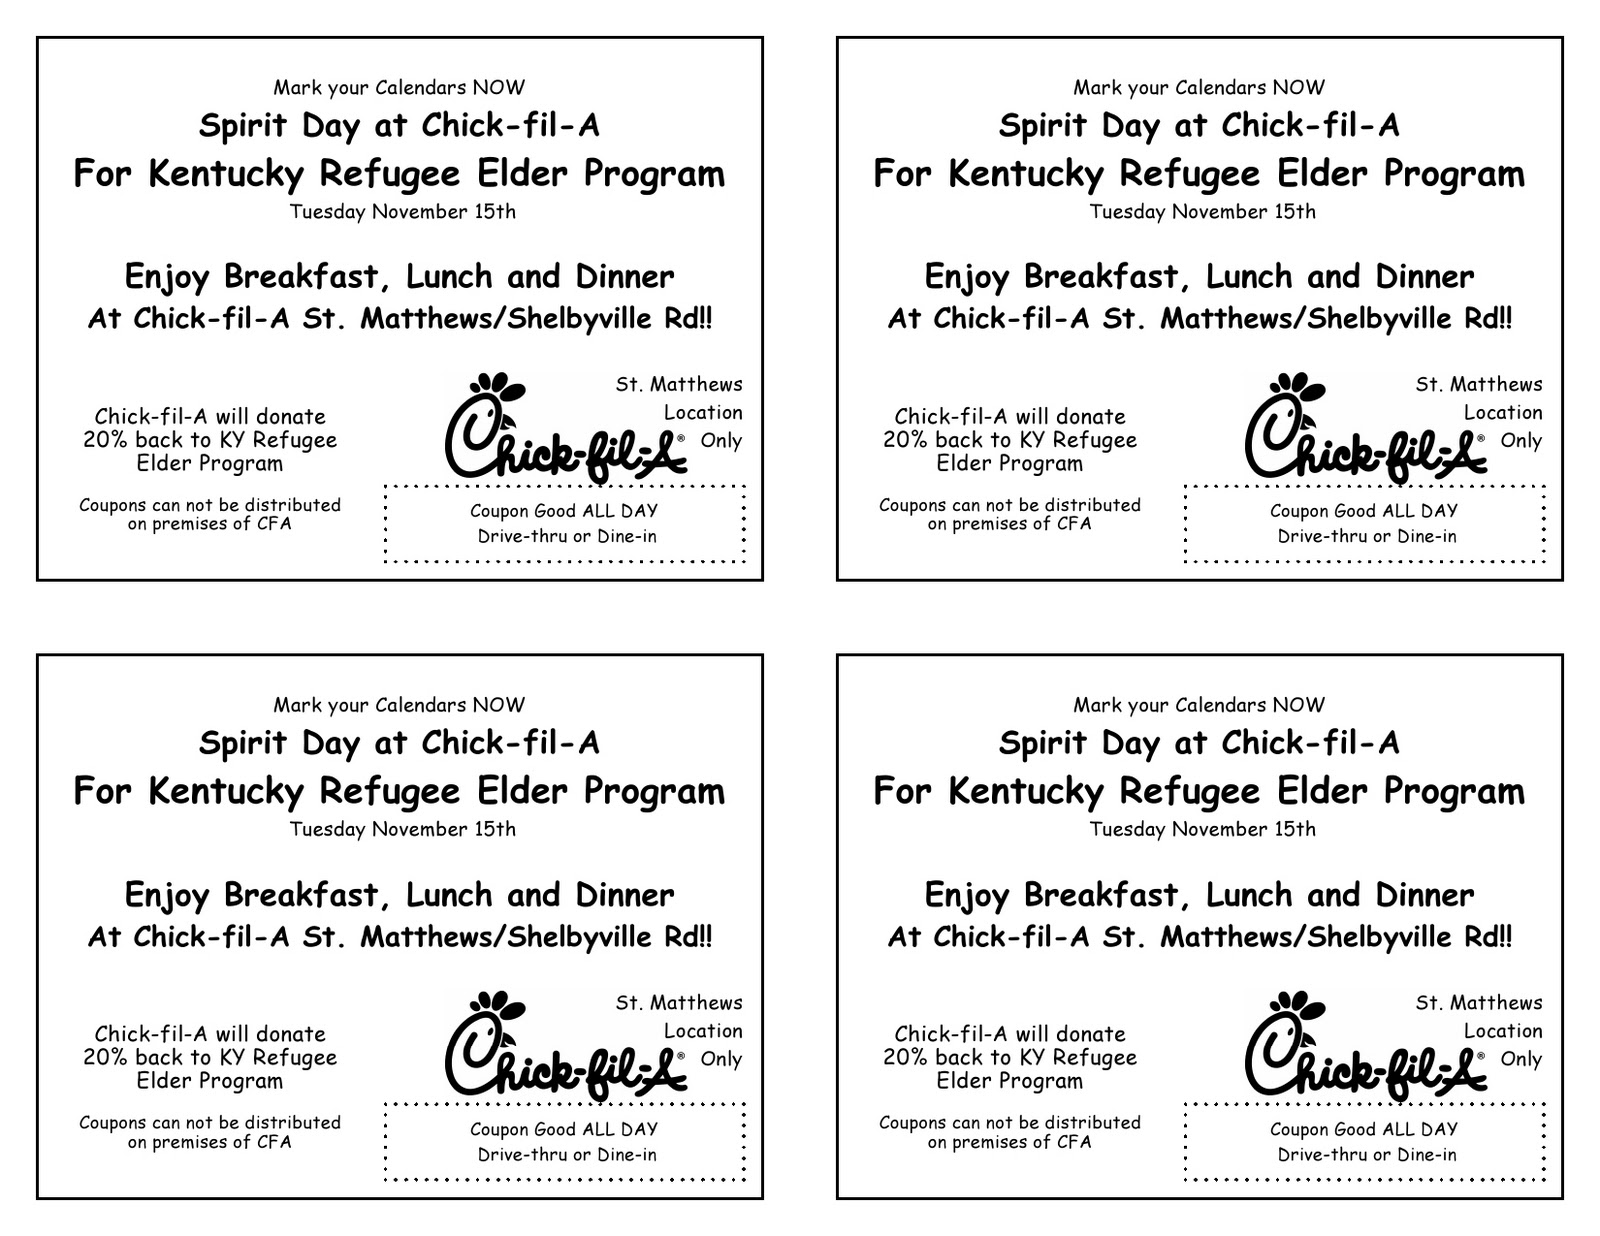 louisville refugee elder program eat out for us chick fil a. Black Bedroom Furniture Sets. Home Design Ideas